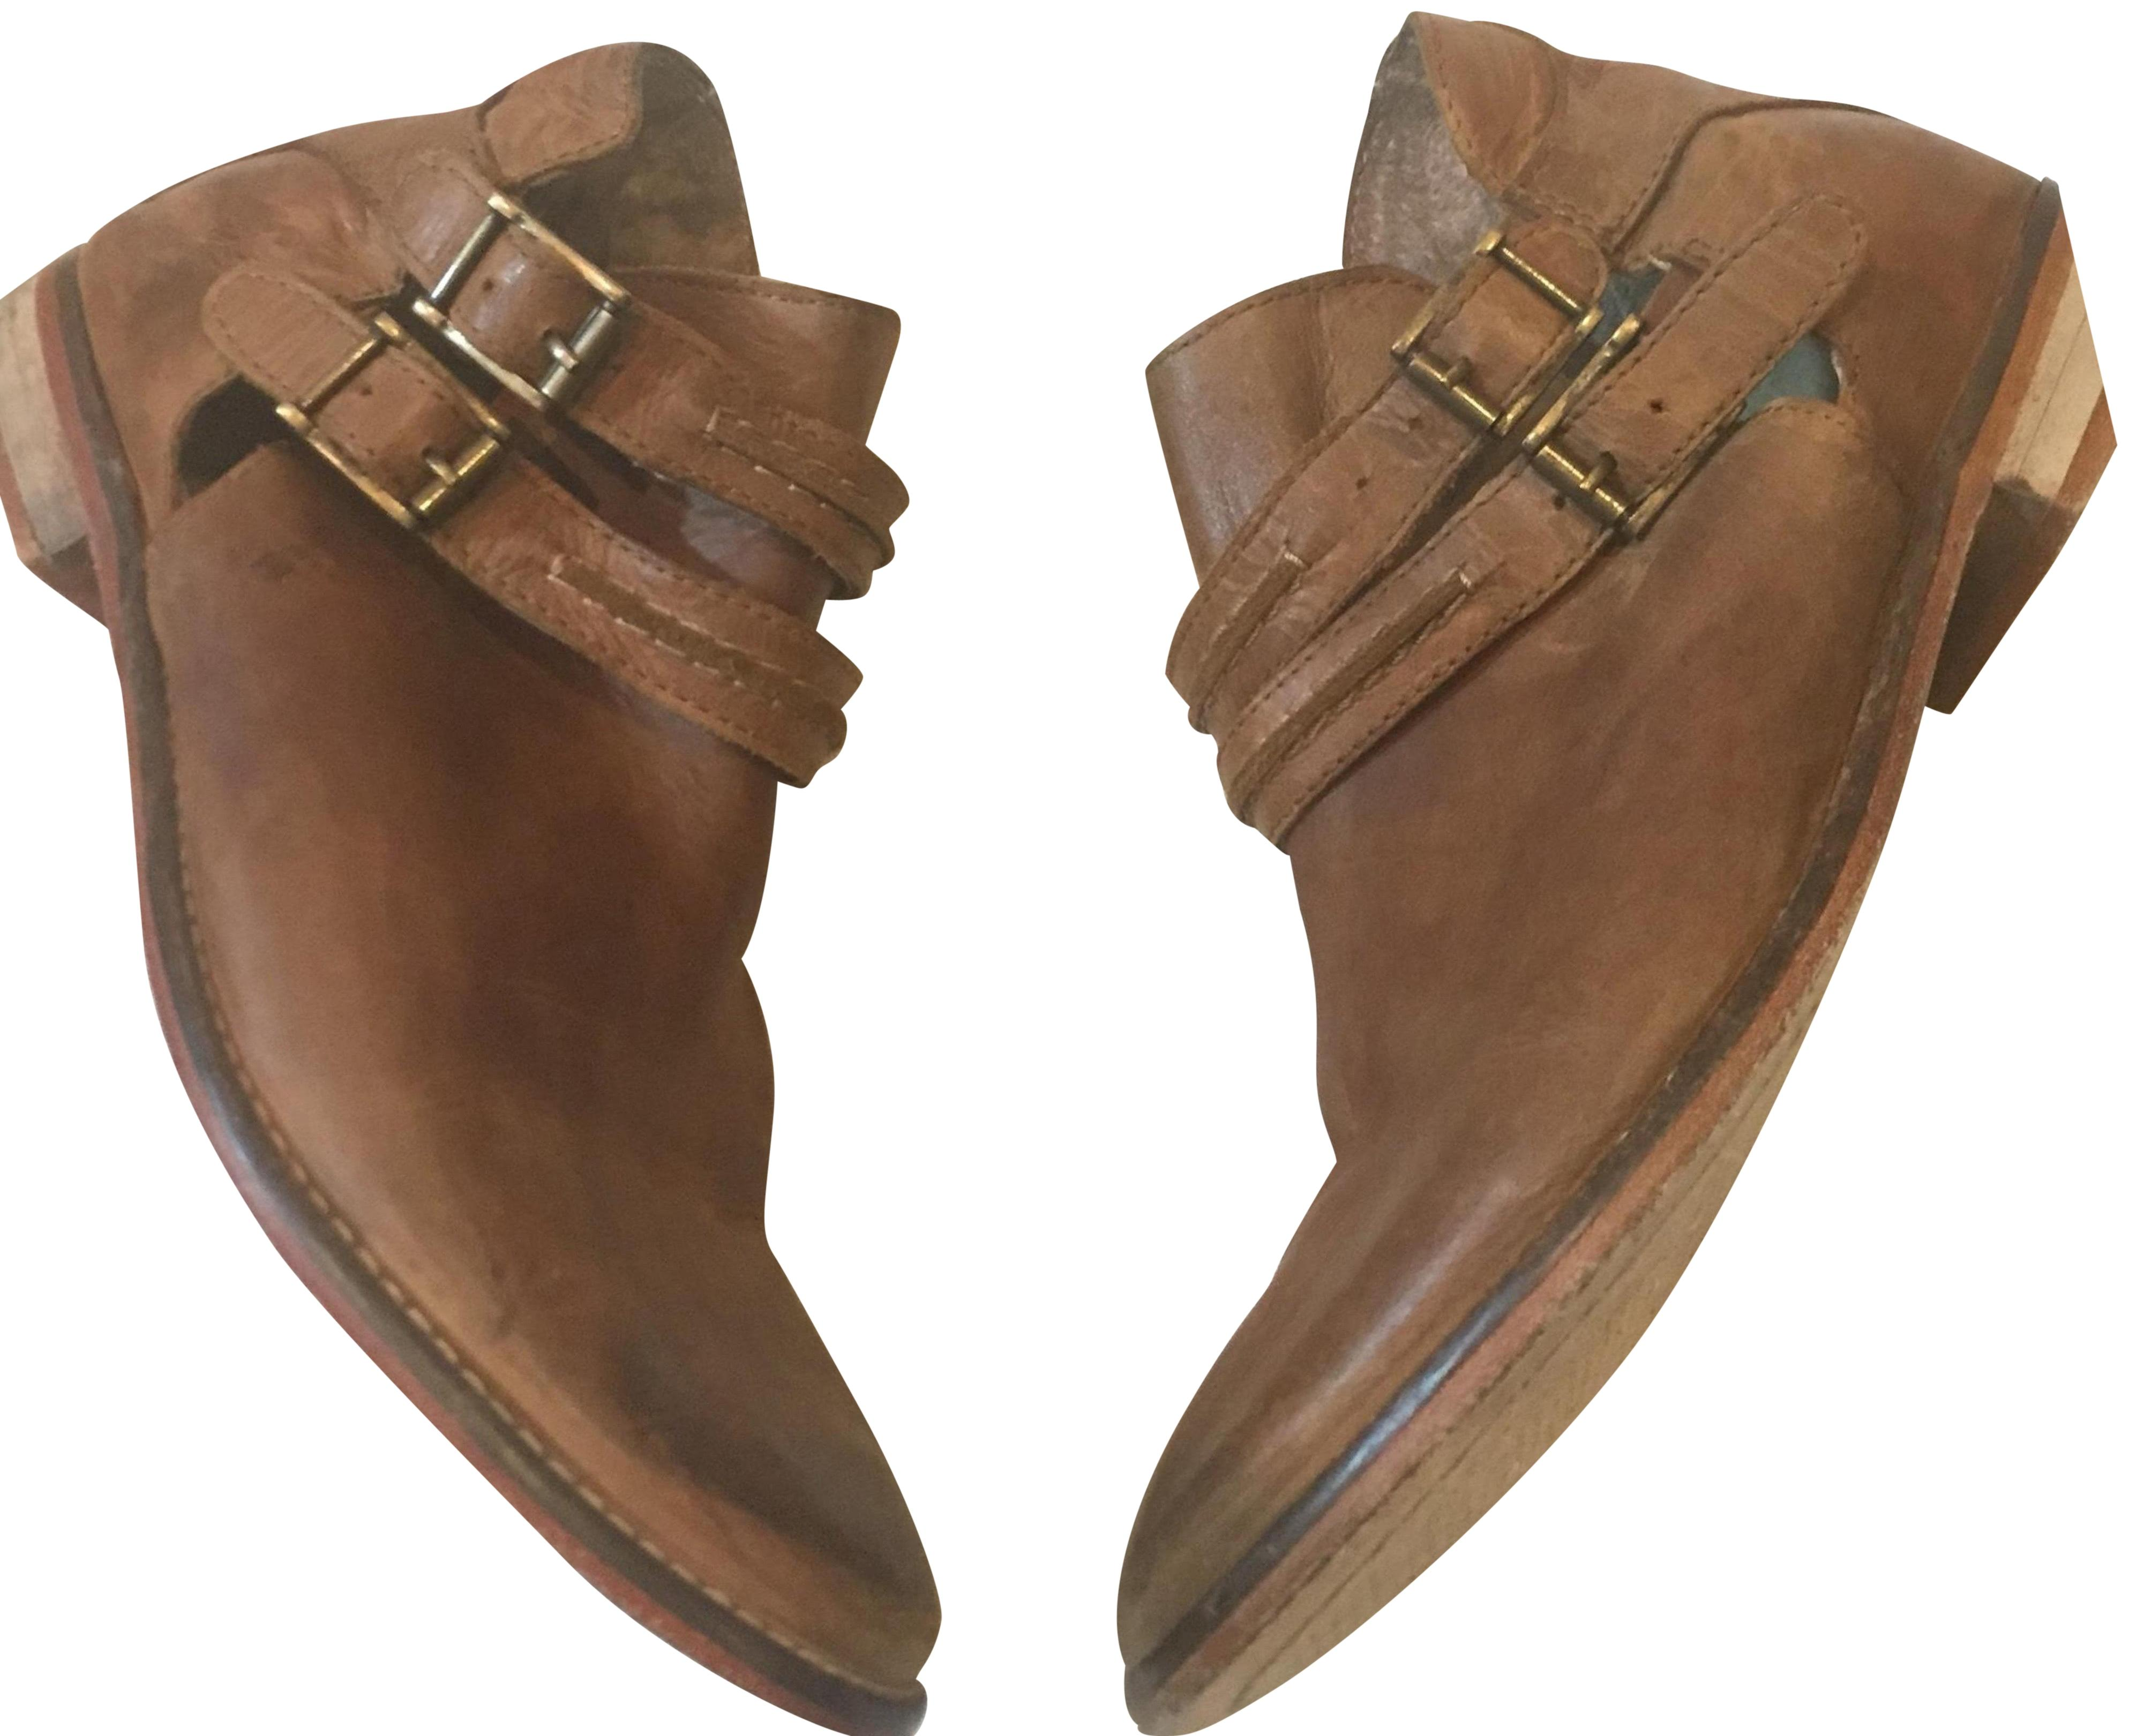 9daa25f585eb Free Free Free People Brown Braeburn Ankle Boots Booties Size US 7 Regular  (M